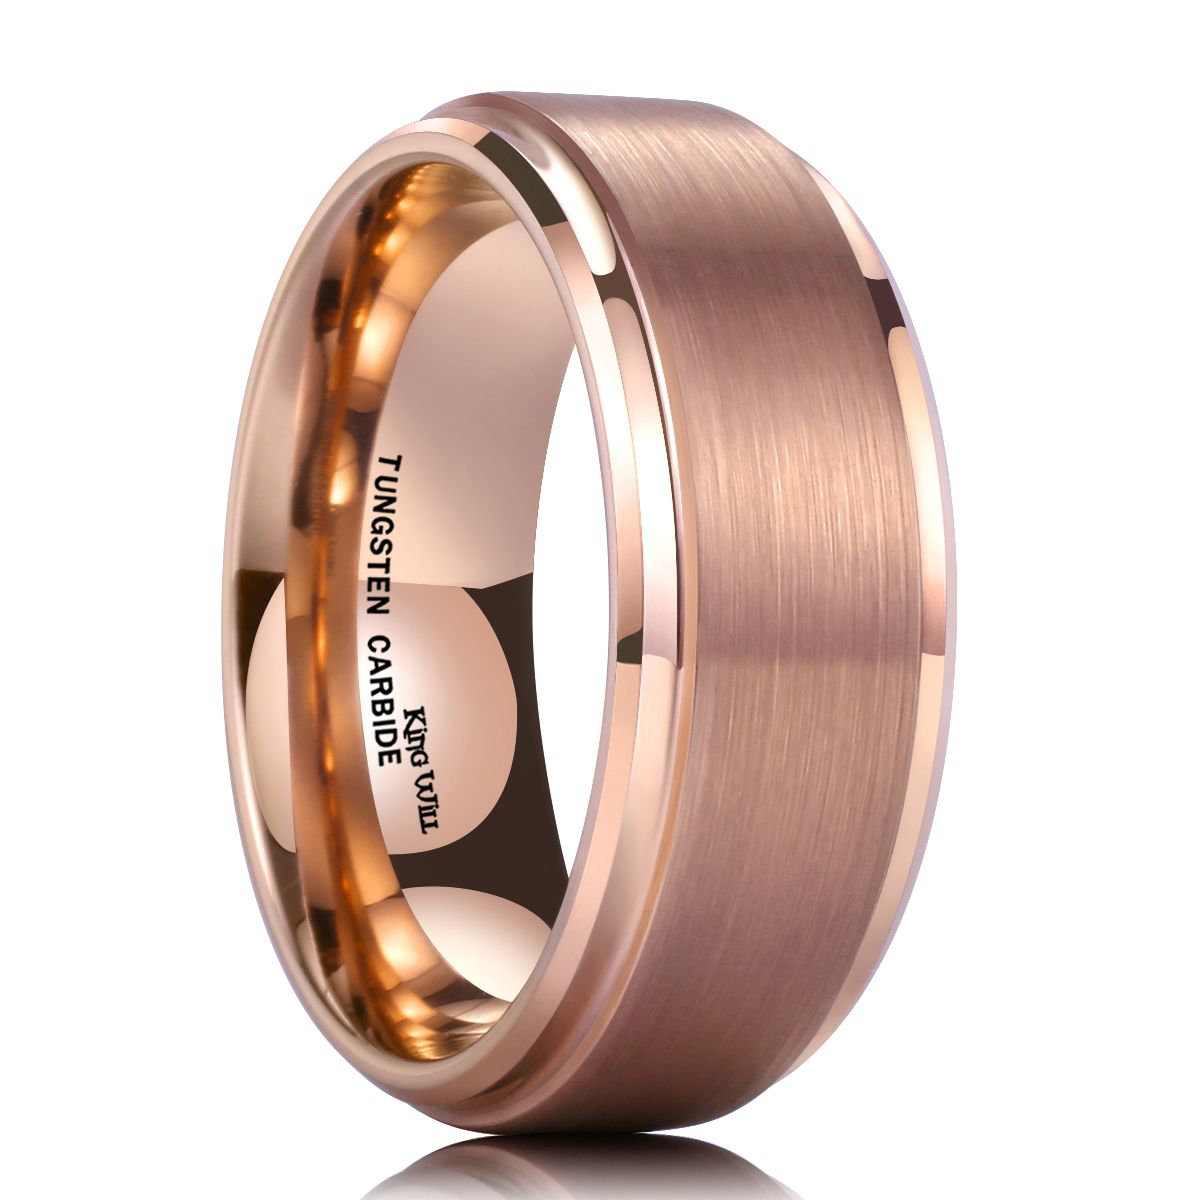 7af13e8c933 Explore Tungsten Carbide Wedding Bands and more! KING WILL GLORY™ 8MM ROSE  GOLD PLATED RING WITH BRUSHED CENTER